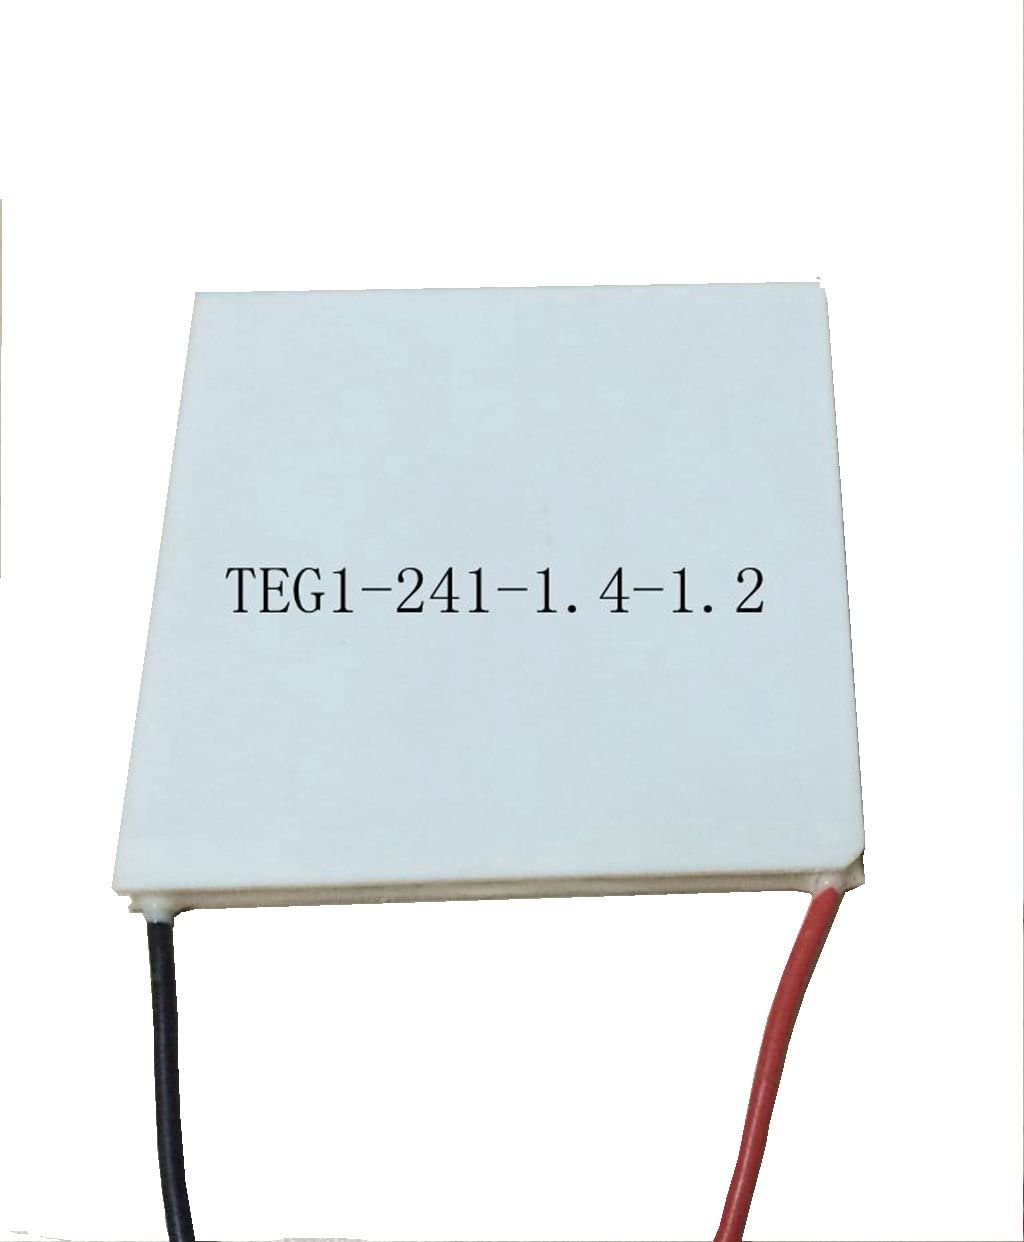 BXQINLENX 55x55MM 7V 1.25A TEG1-241-1.4-1.2 Thermoelectric Power Generation Peltier Module LYSB011IJW6BC-ELECTRNCS